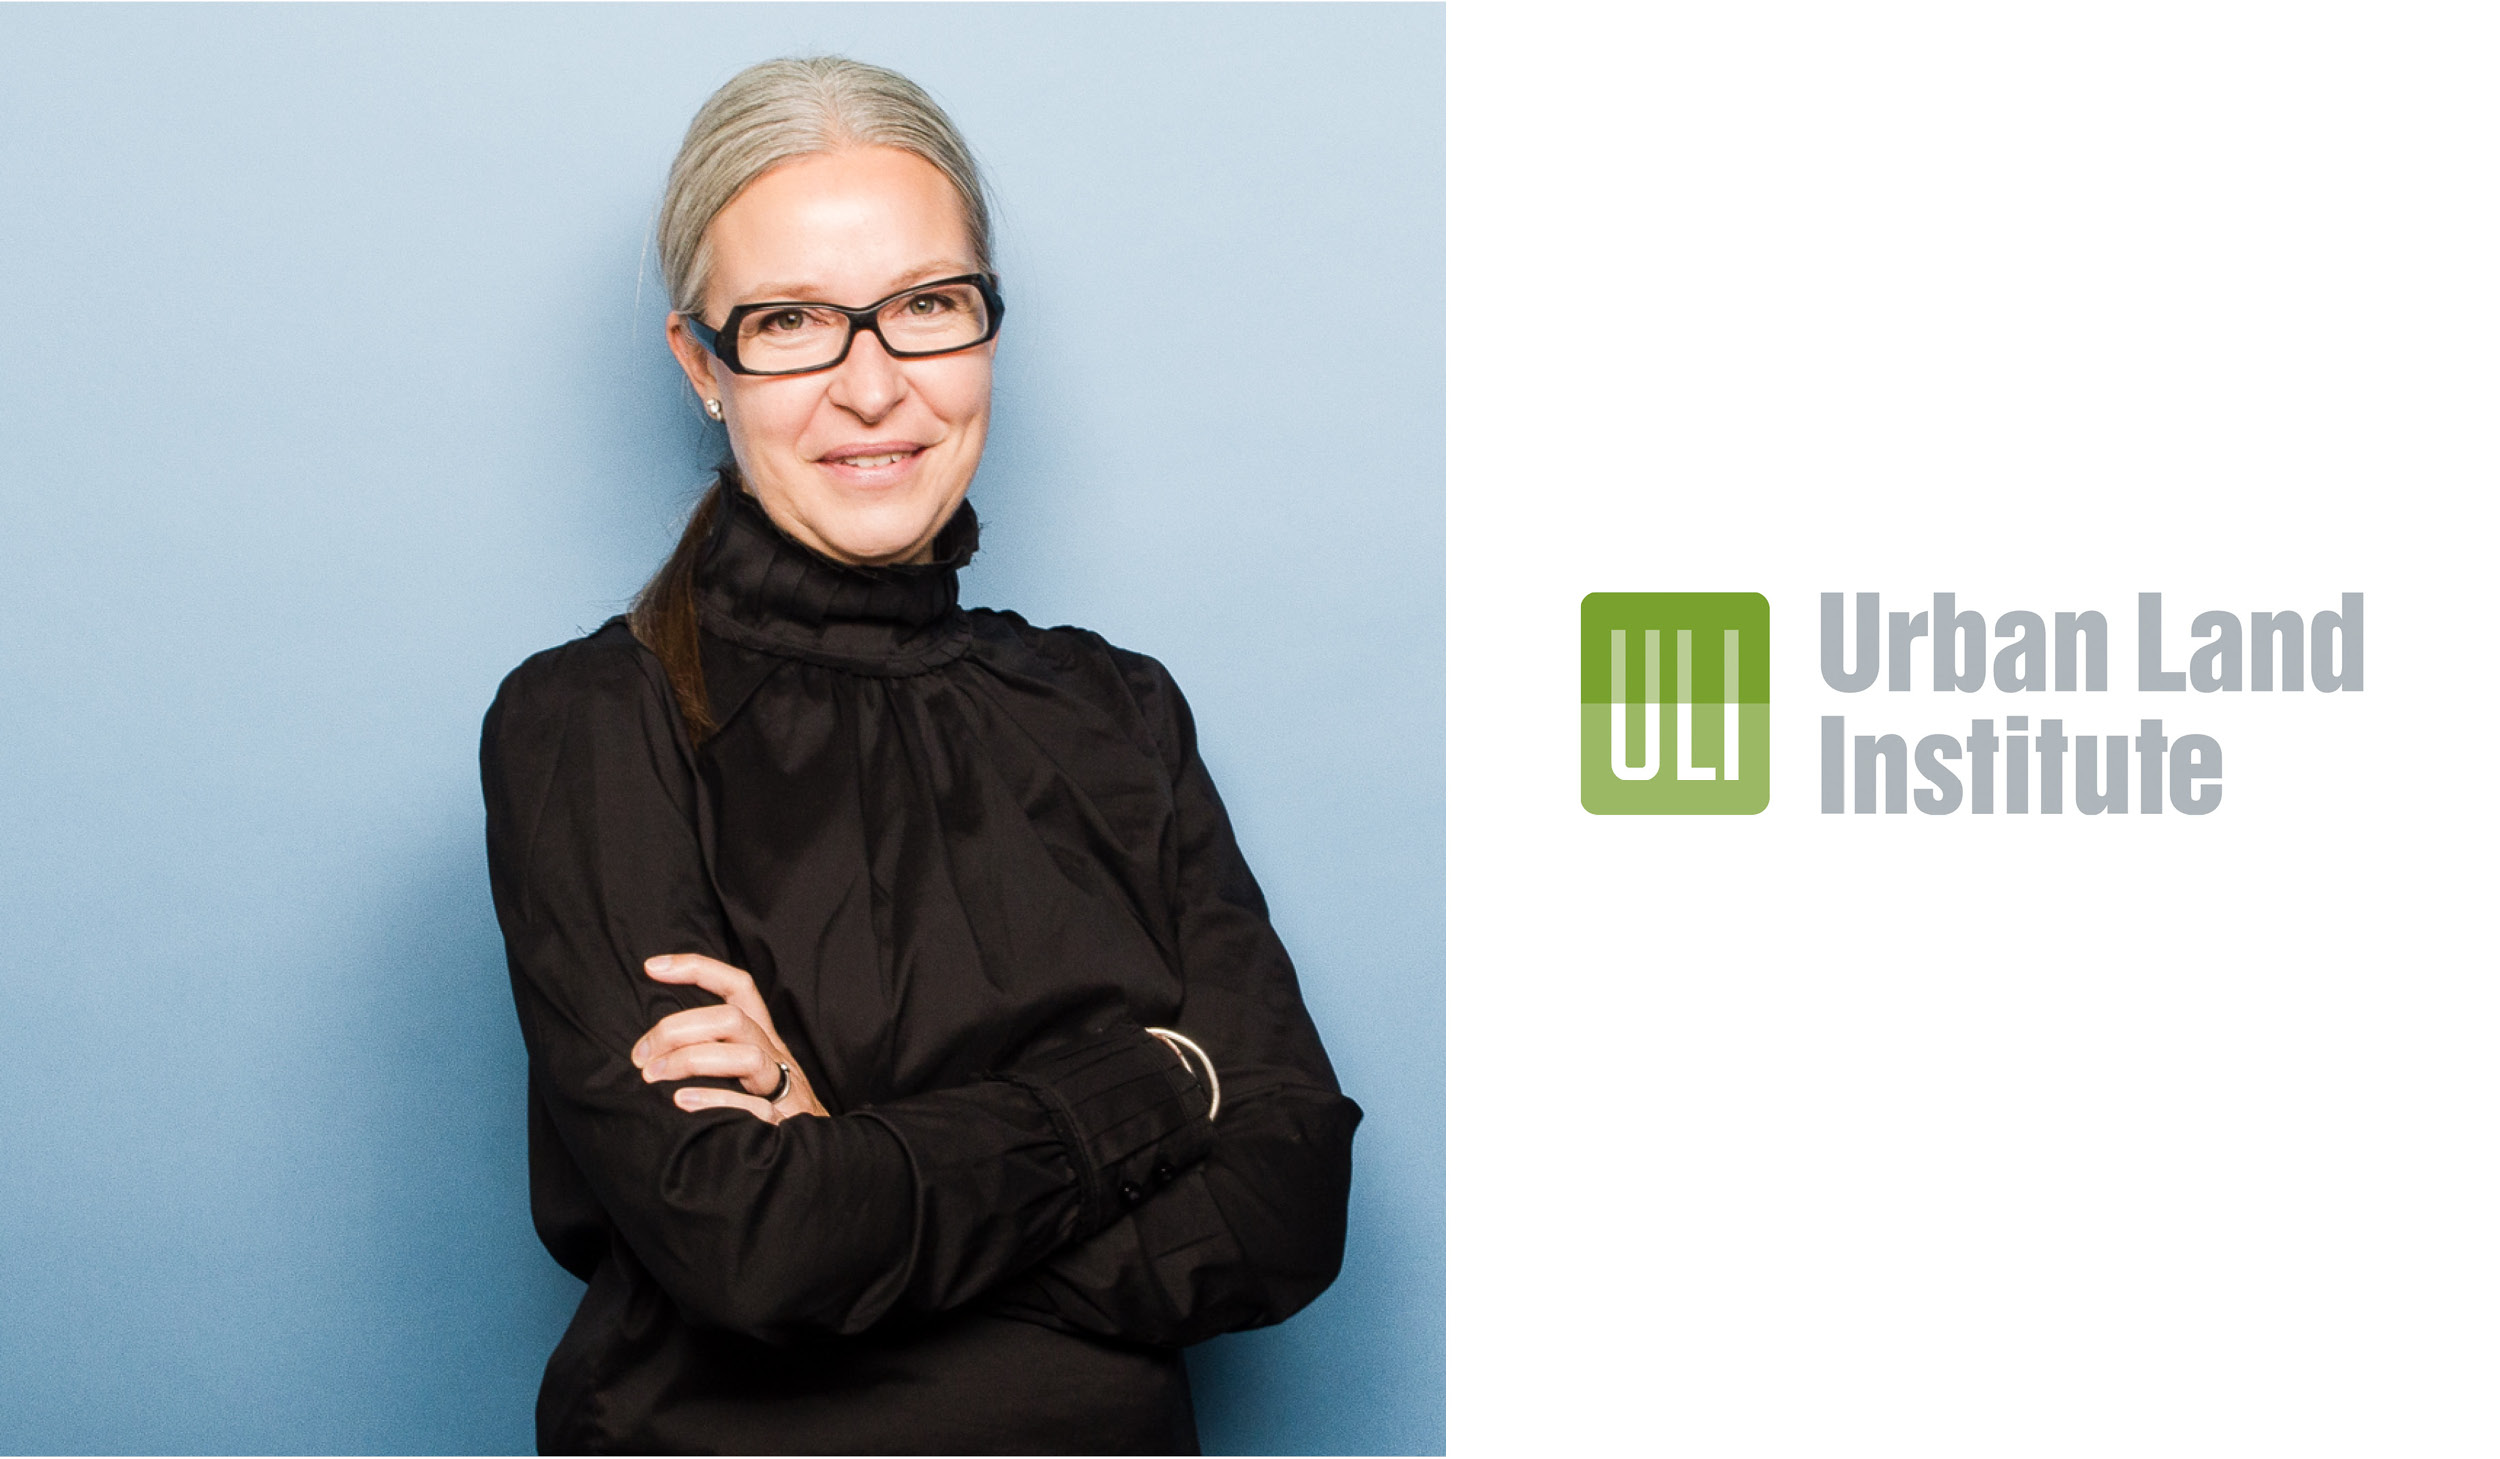 Heather Rolleston and the Urban Land Institute logo